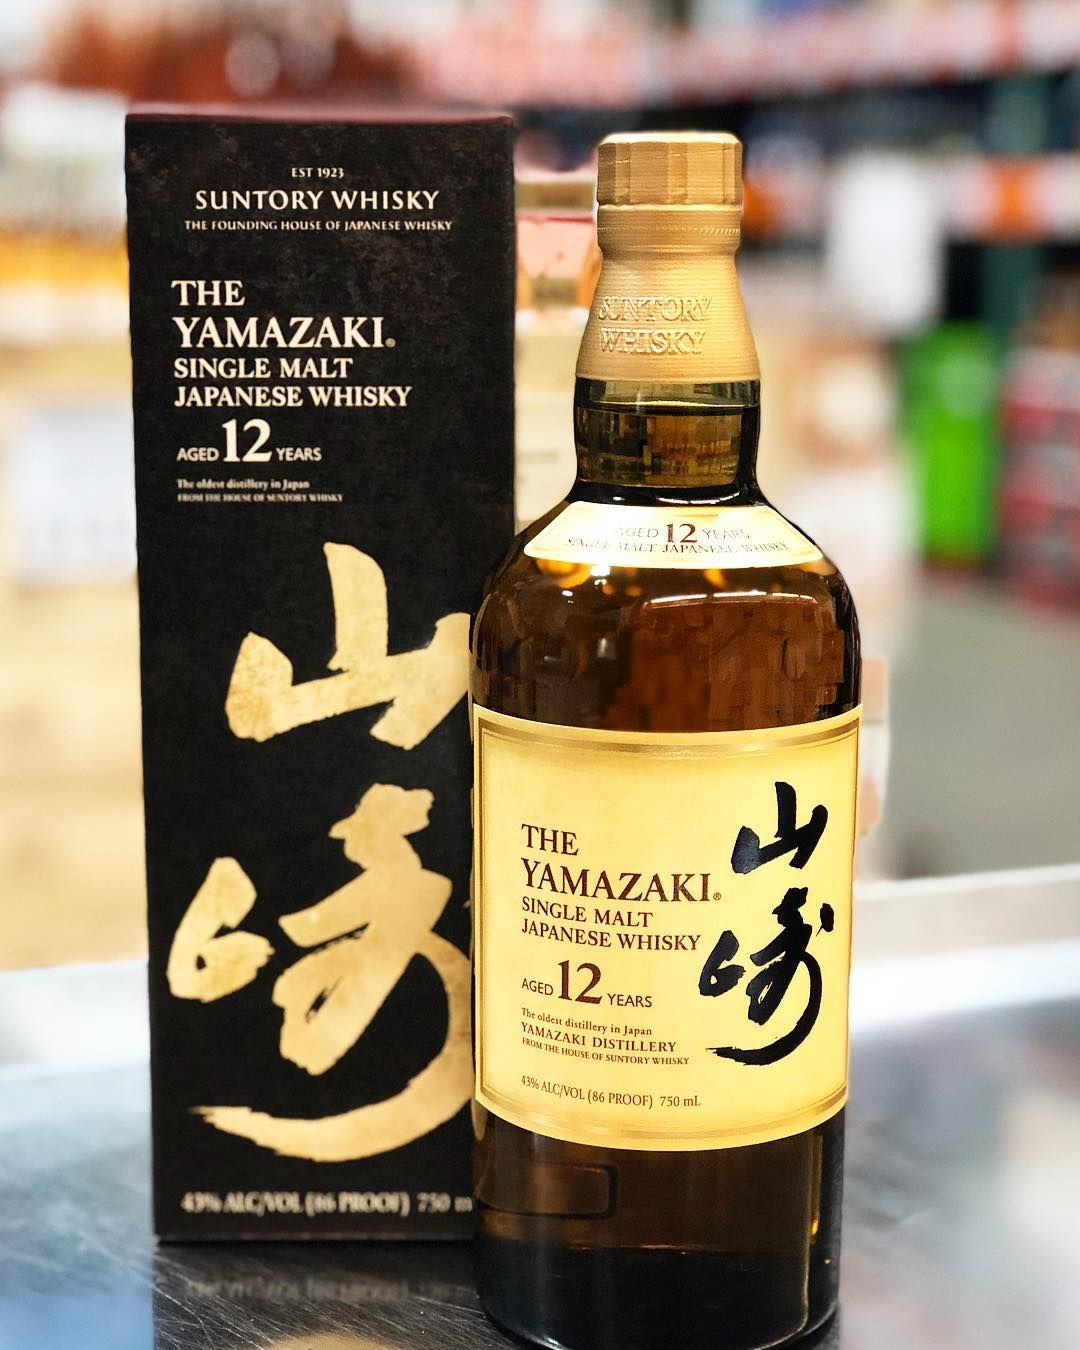 We Have A Limited Quantity Of Yamazaki 12 Year Whisky 139 99 Bottle Come On Down This Week And With Images Whisky Japanese Whisky Suntory Whisky